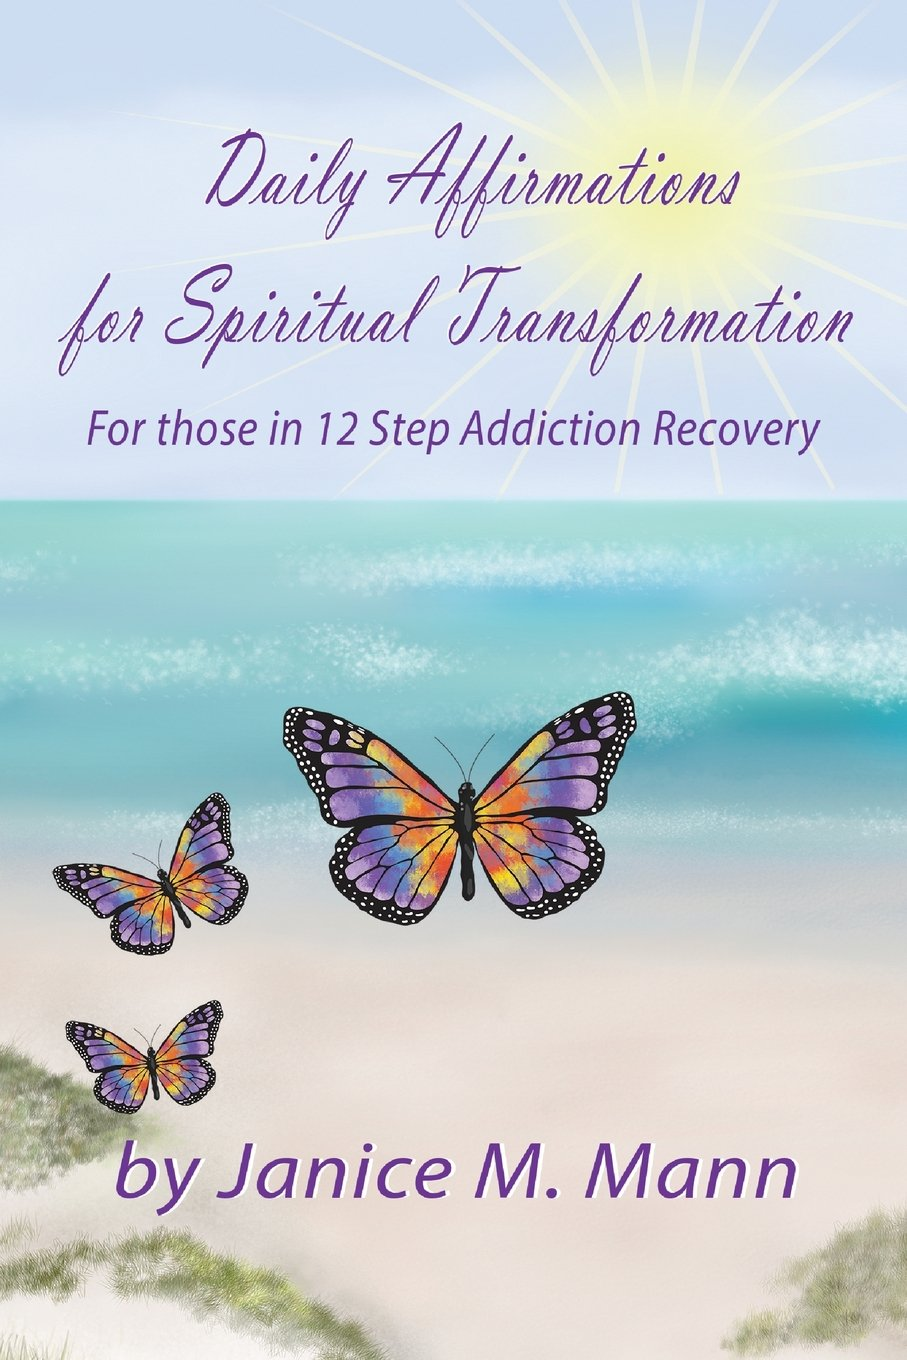 Daily Affirmations for Spiritual Transformation for those in 12 Step Addiction Recovery PDF